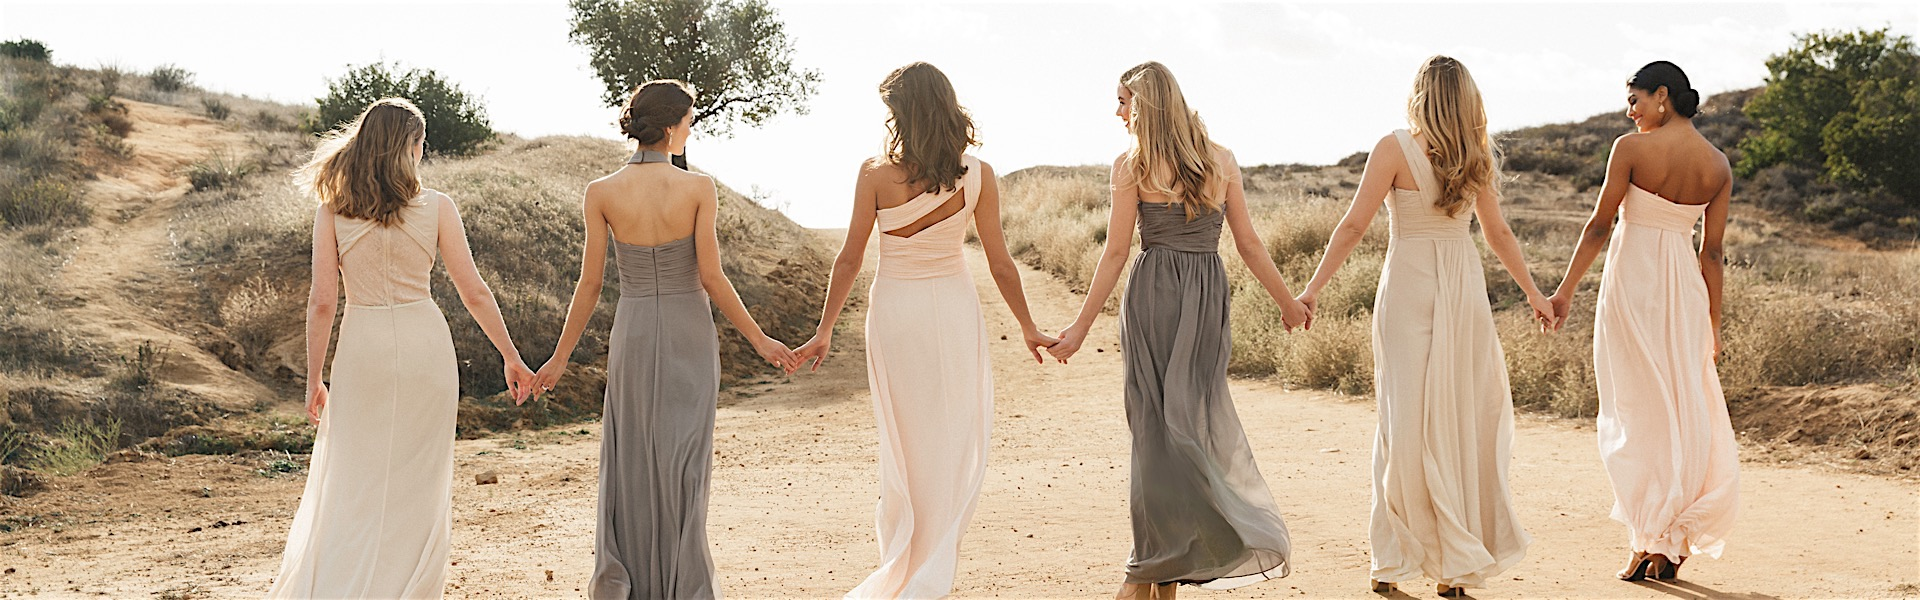 Vow to be chic designer bridesmaid dresses you rent modwedding vow to be chic designer bridesmaid dresses you can rent ombrellifo Gallery